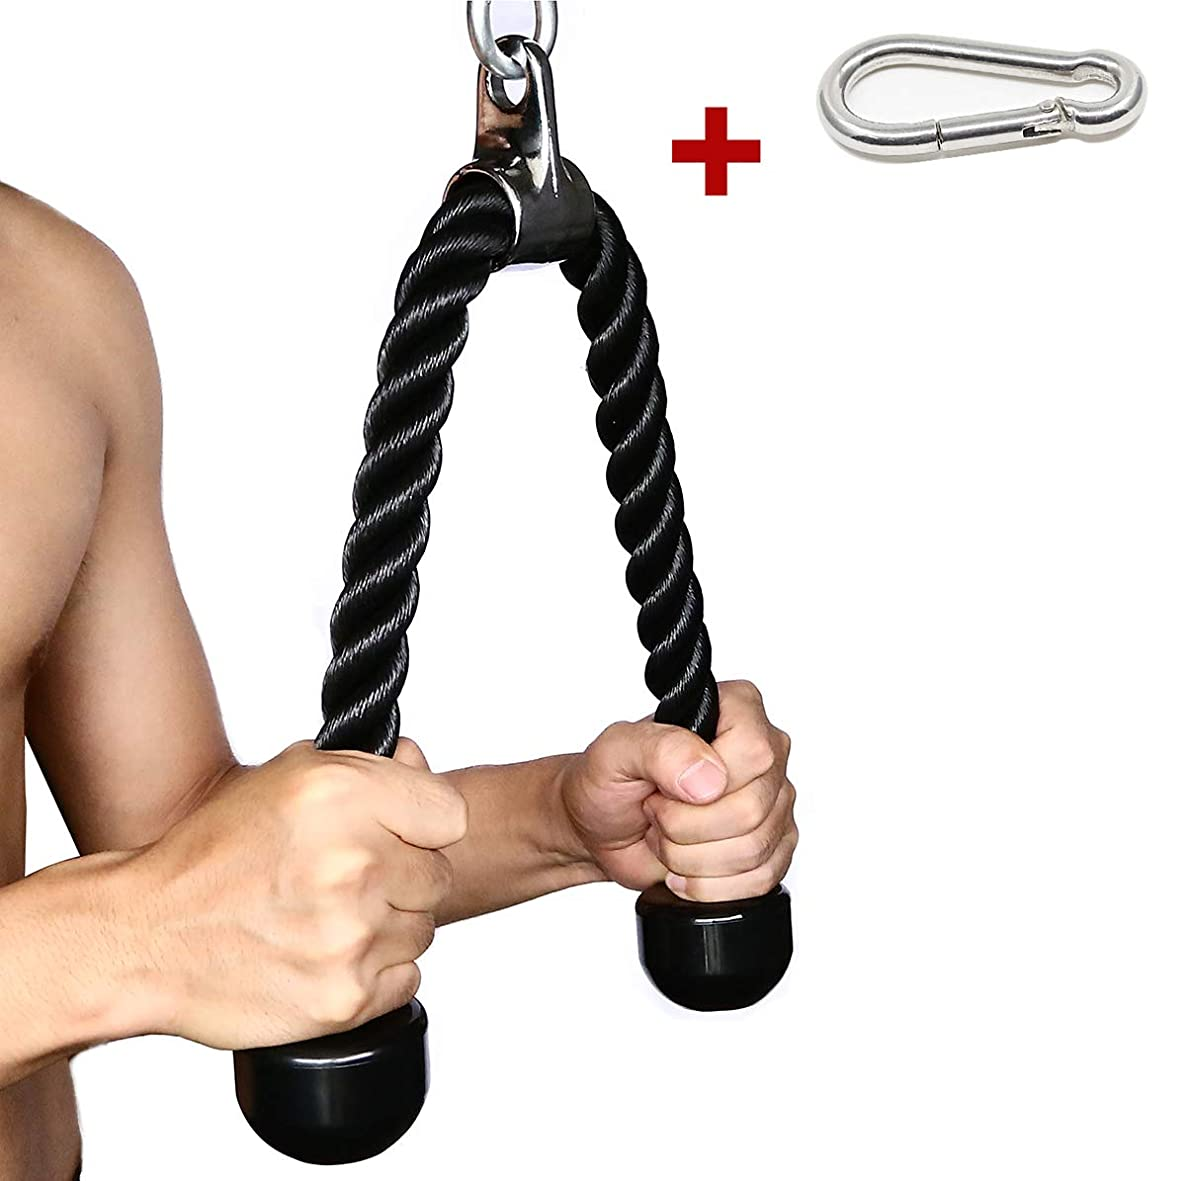 Tricep Rope 27 & 36 inches 2 Colors Fitness Attachment Cable Machine Pulldown Heavy Duty Coated Nylon Rope with Solid Rubber Ends biczgmoapgmlbogj